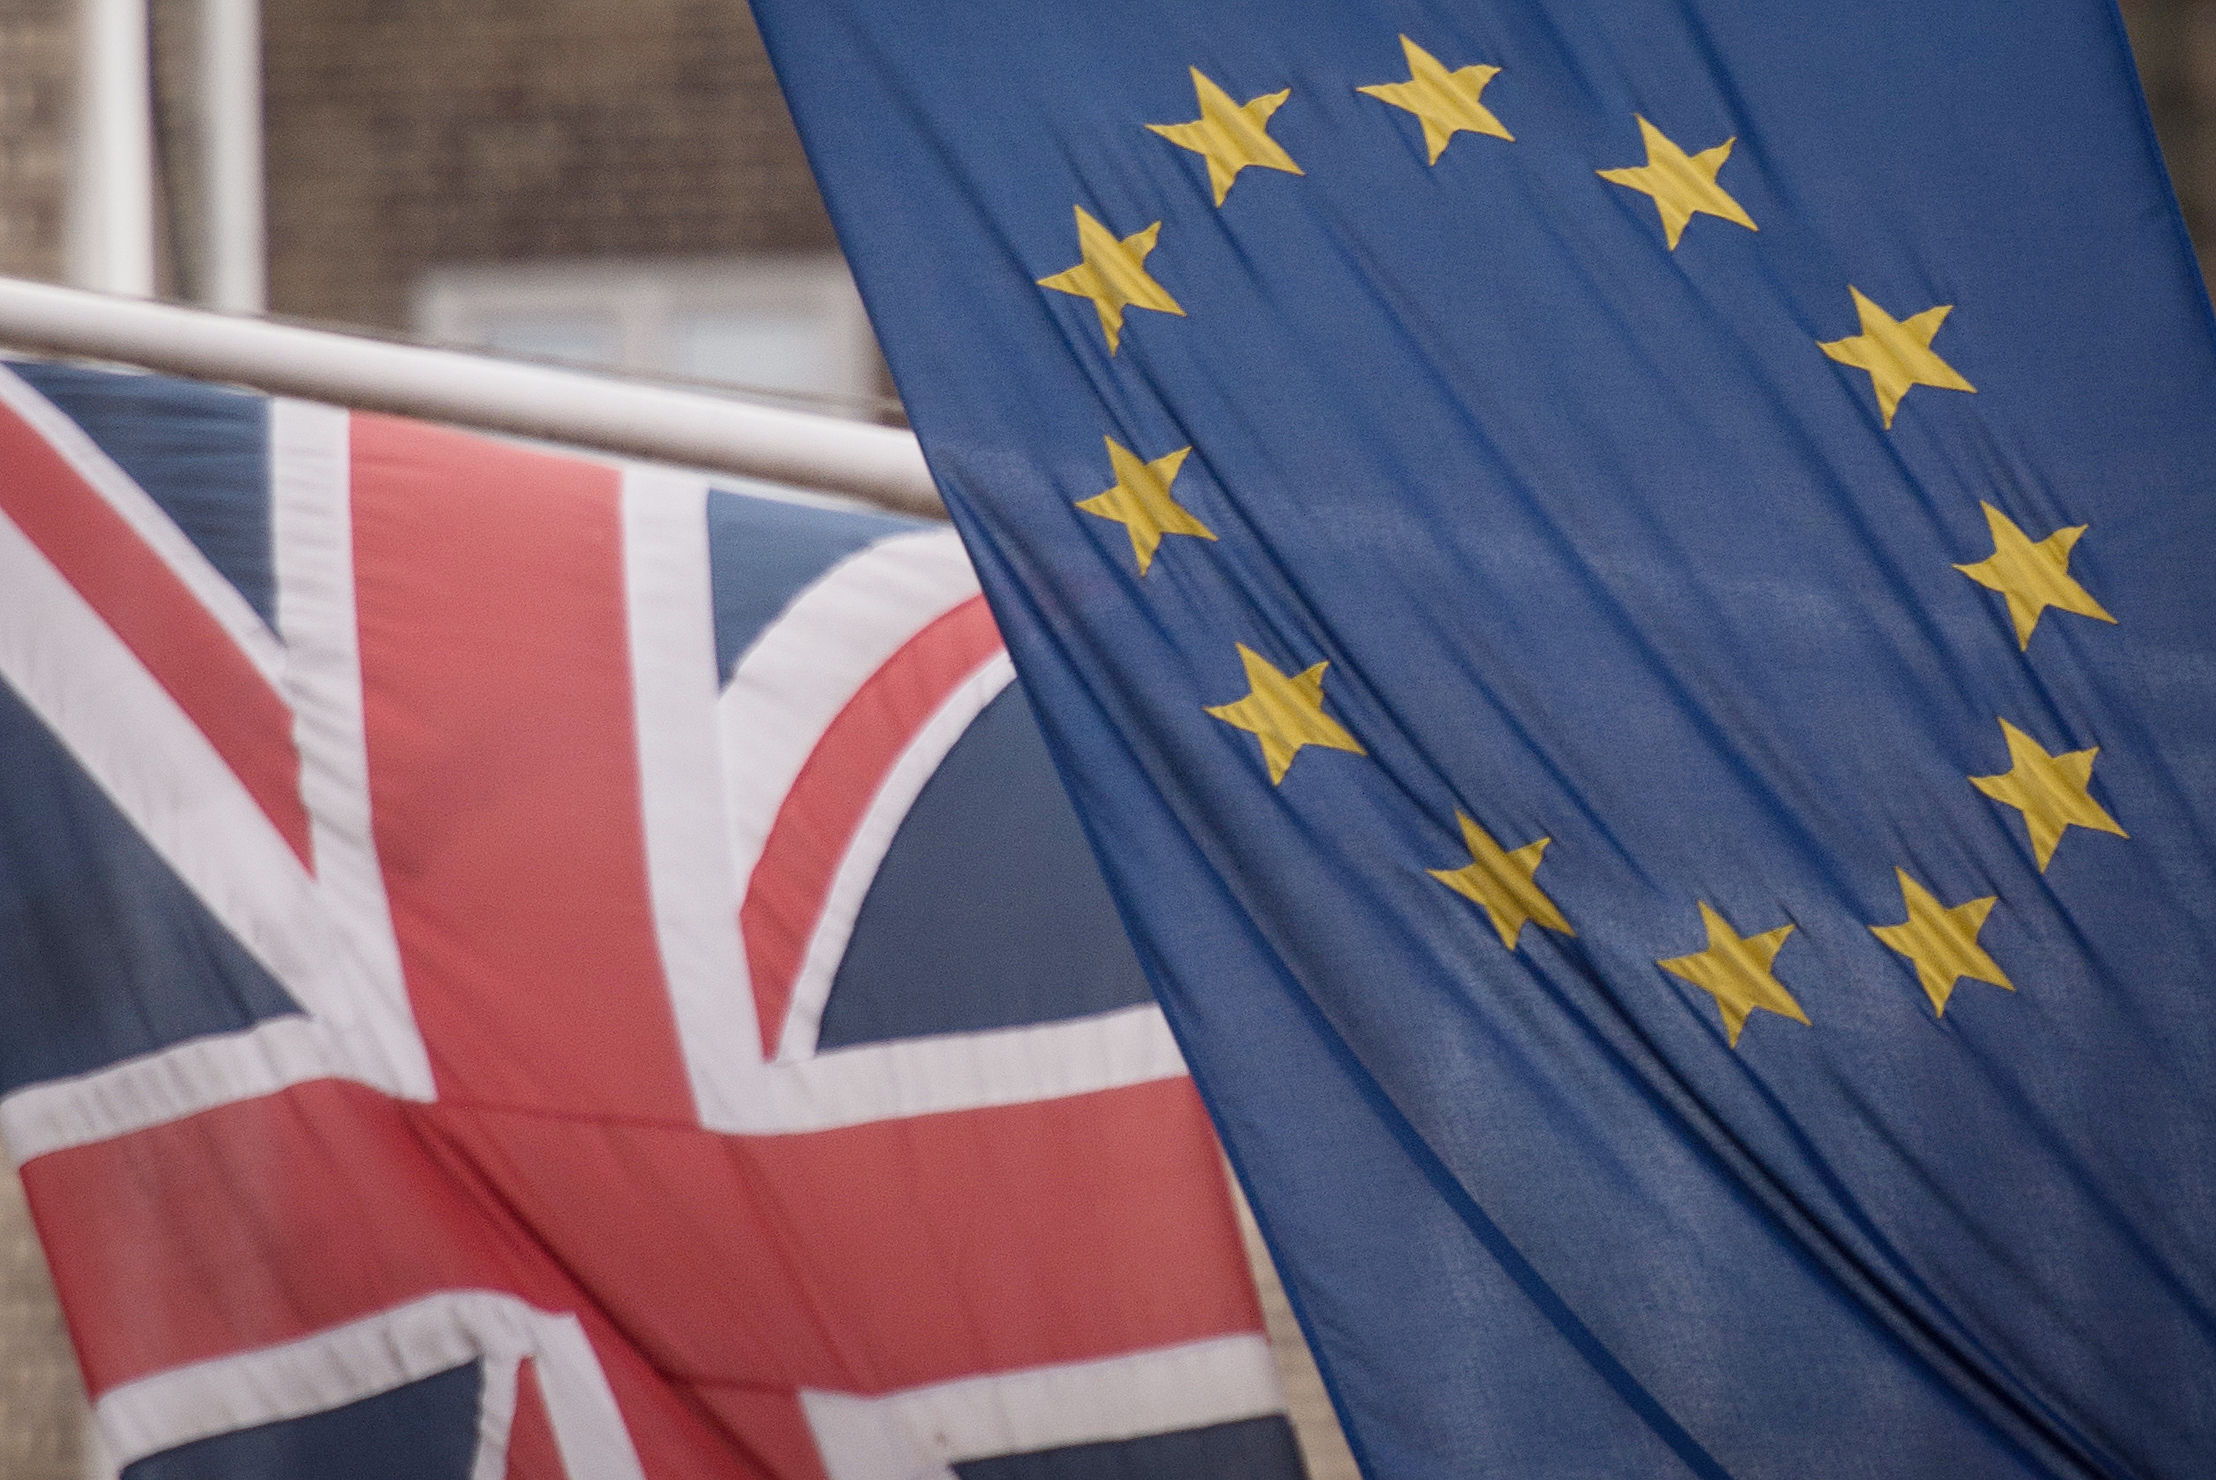 Embargoed to 2230 Sunday February 03File photo dated 17/2/2016 of the EUand Union flags. Downing Street has said senior members of the hardline eurosceptic European Research Group have been drafted in by the Government to help develop an alternative to